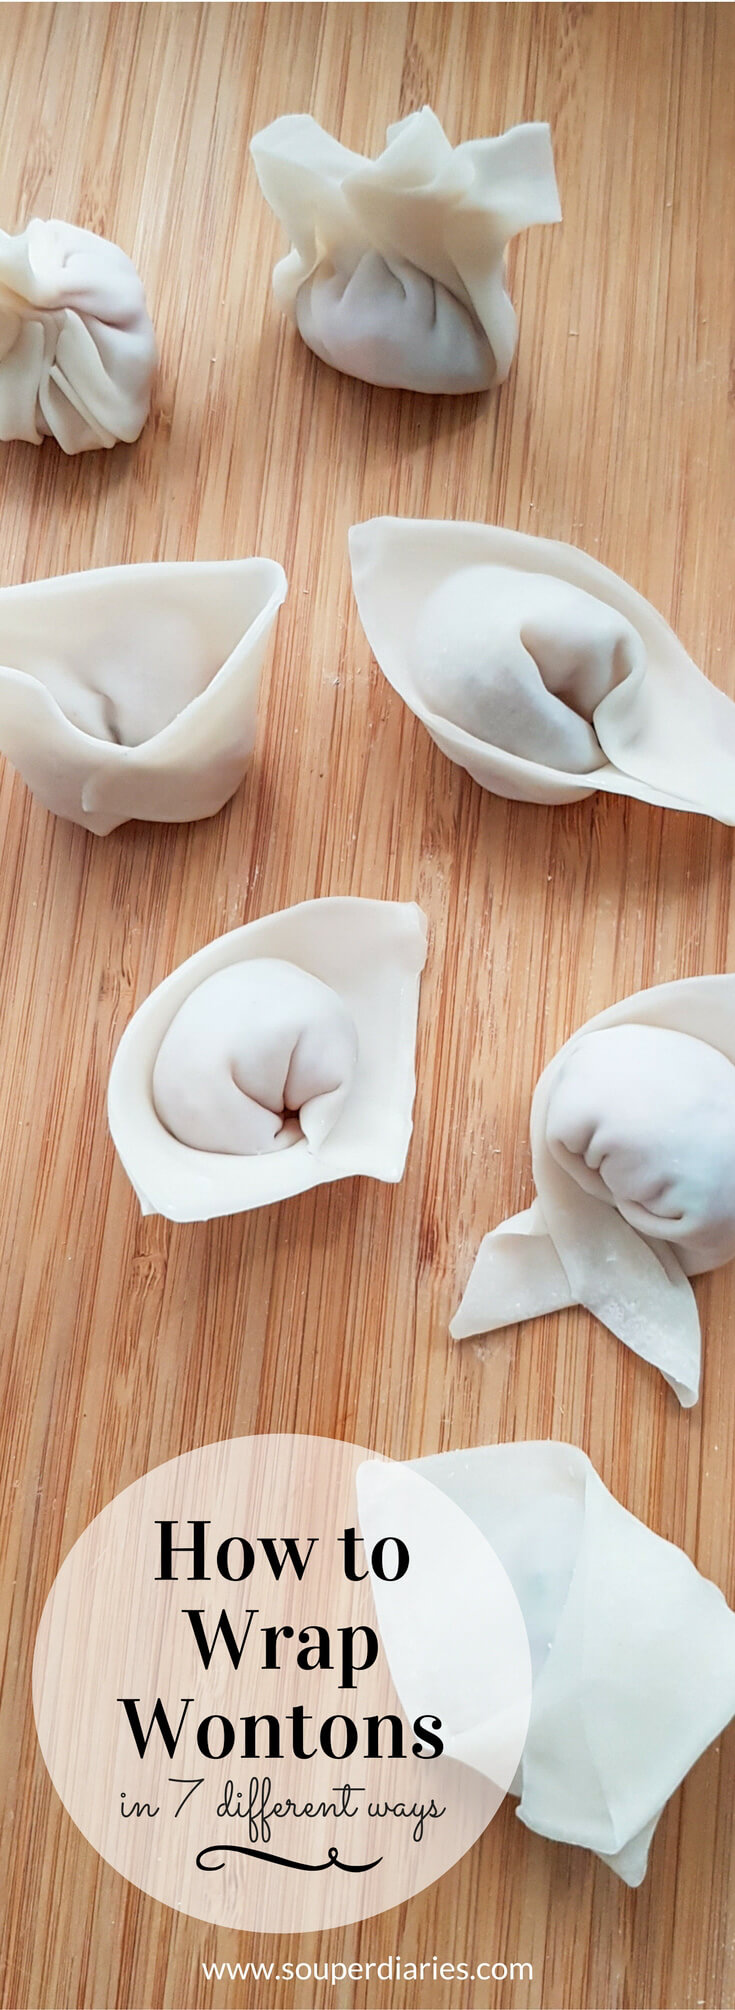 How to wrap wontons in 7 different ways